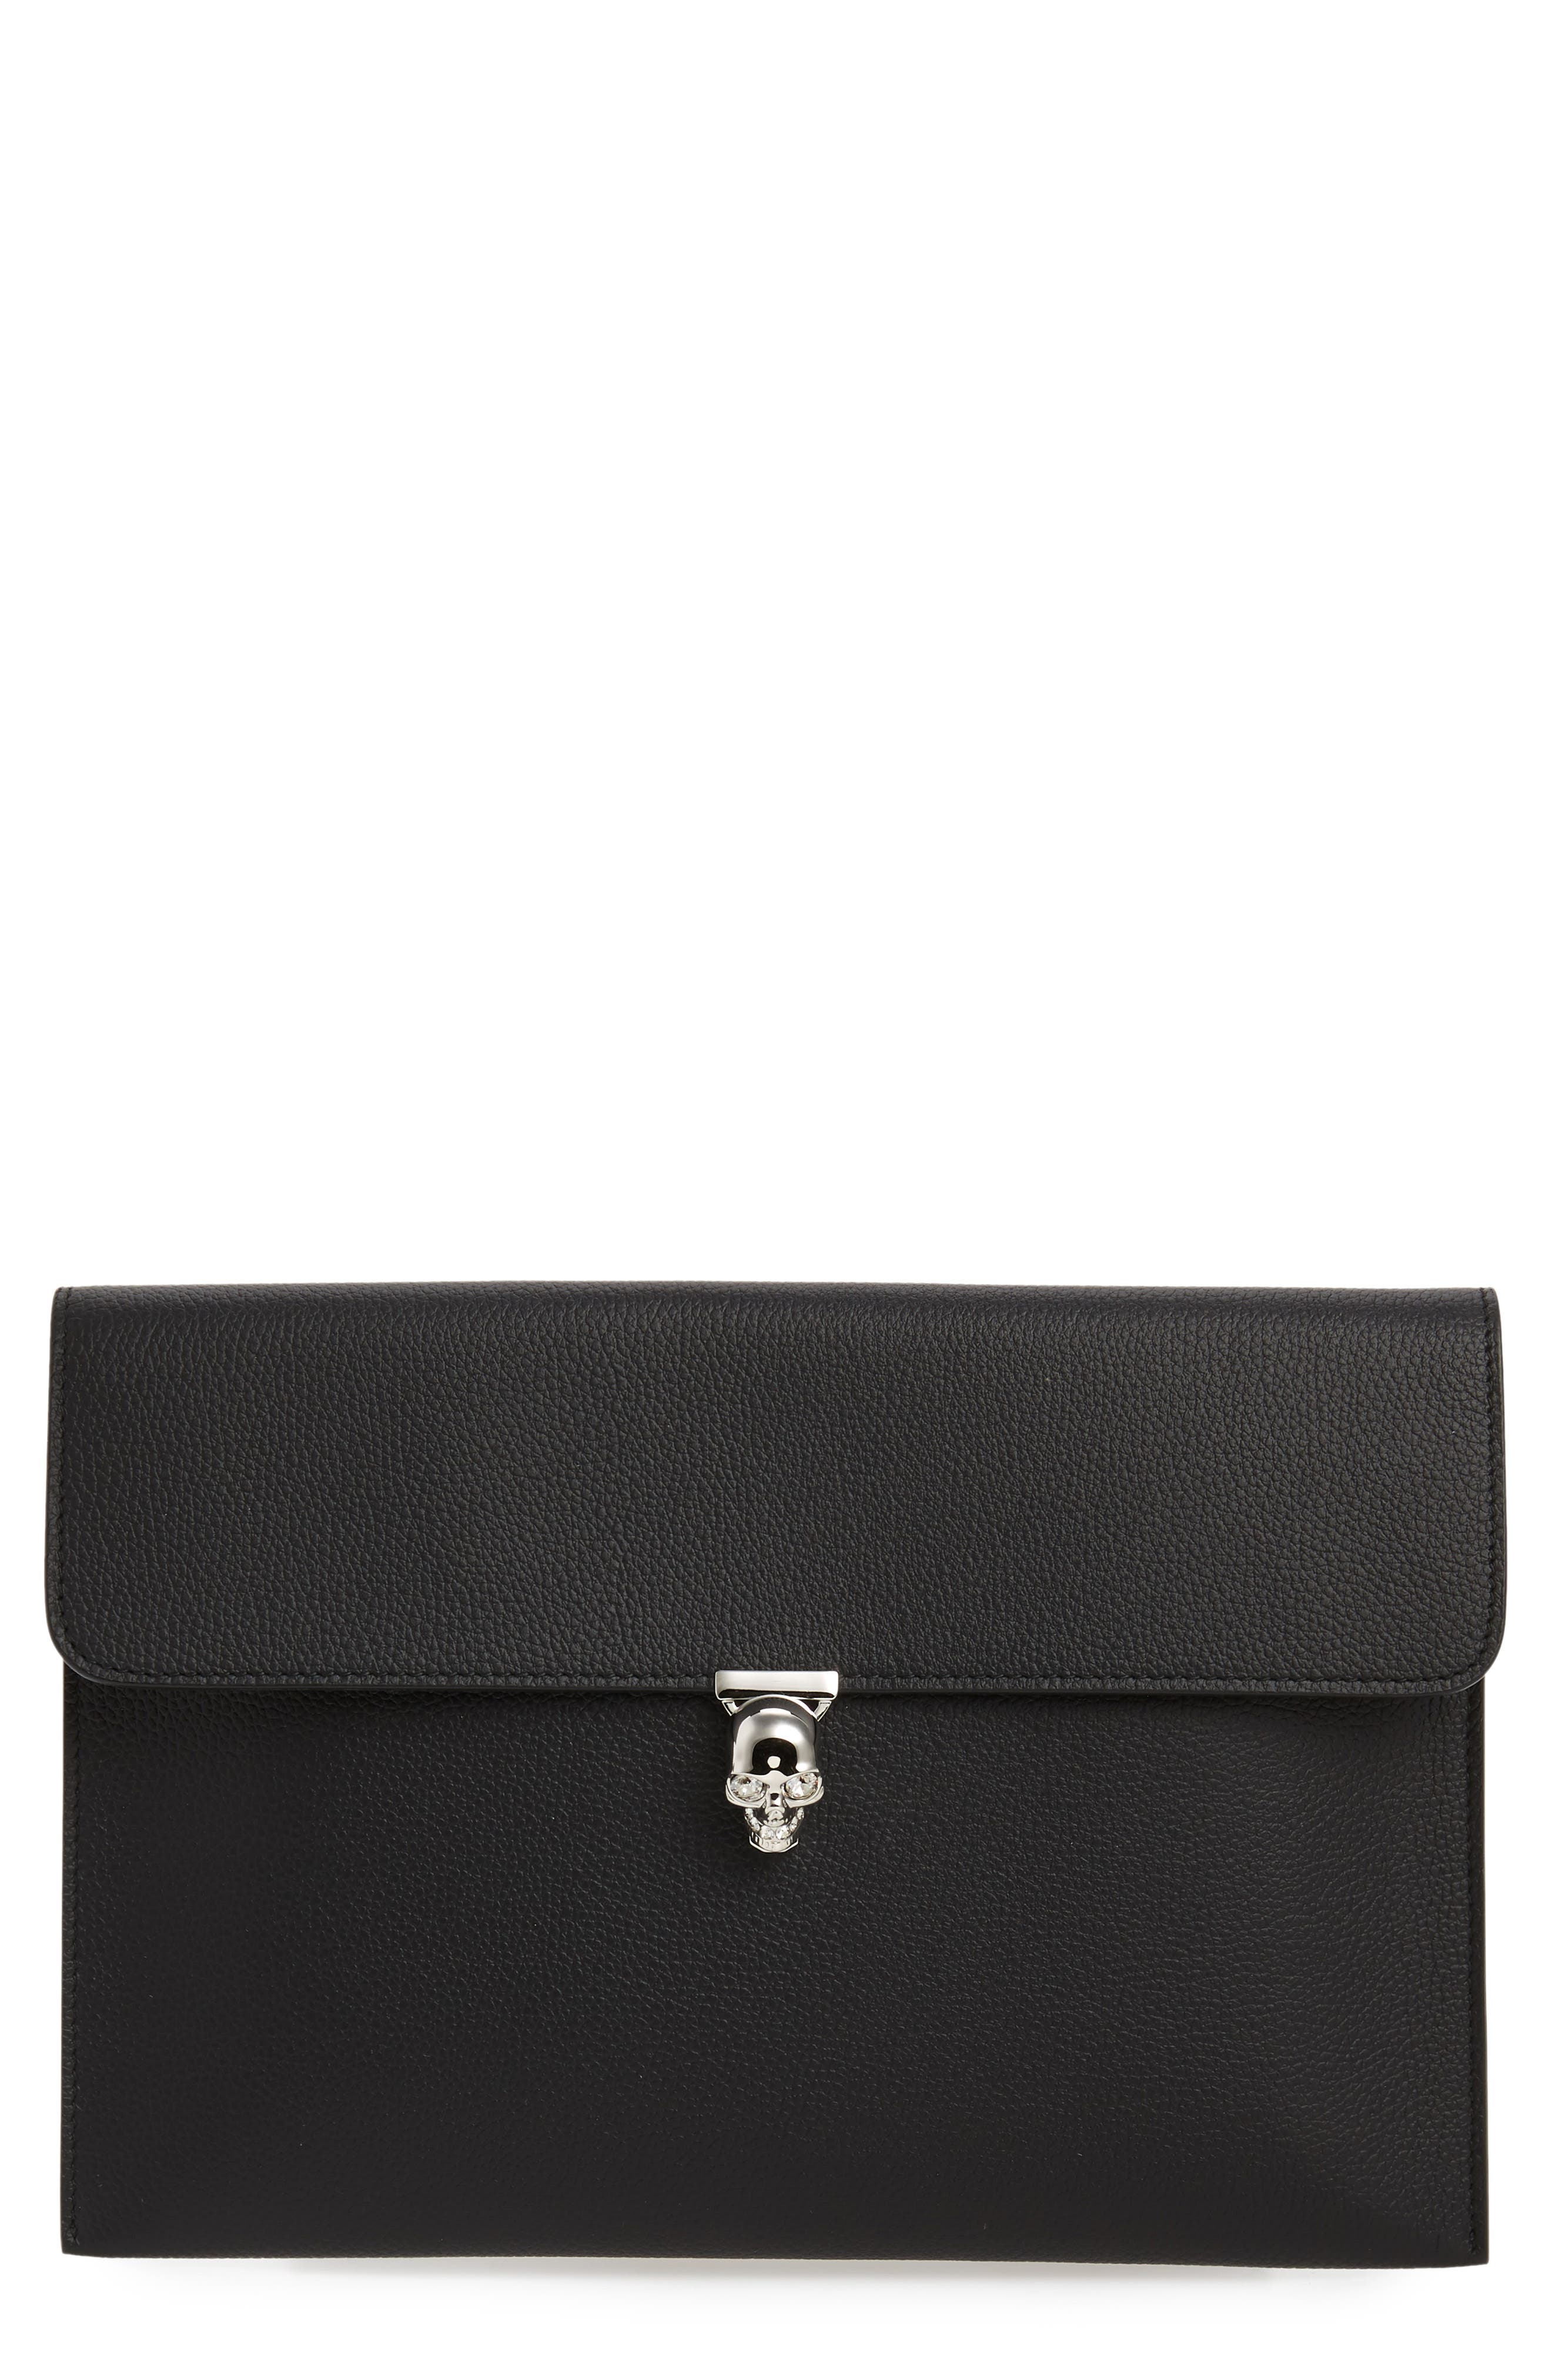 Alexander McQueen Womens Pouch On Sale, Black, Leather, 2017, one size